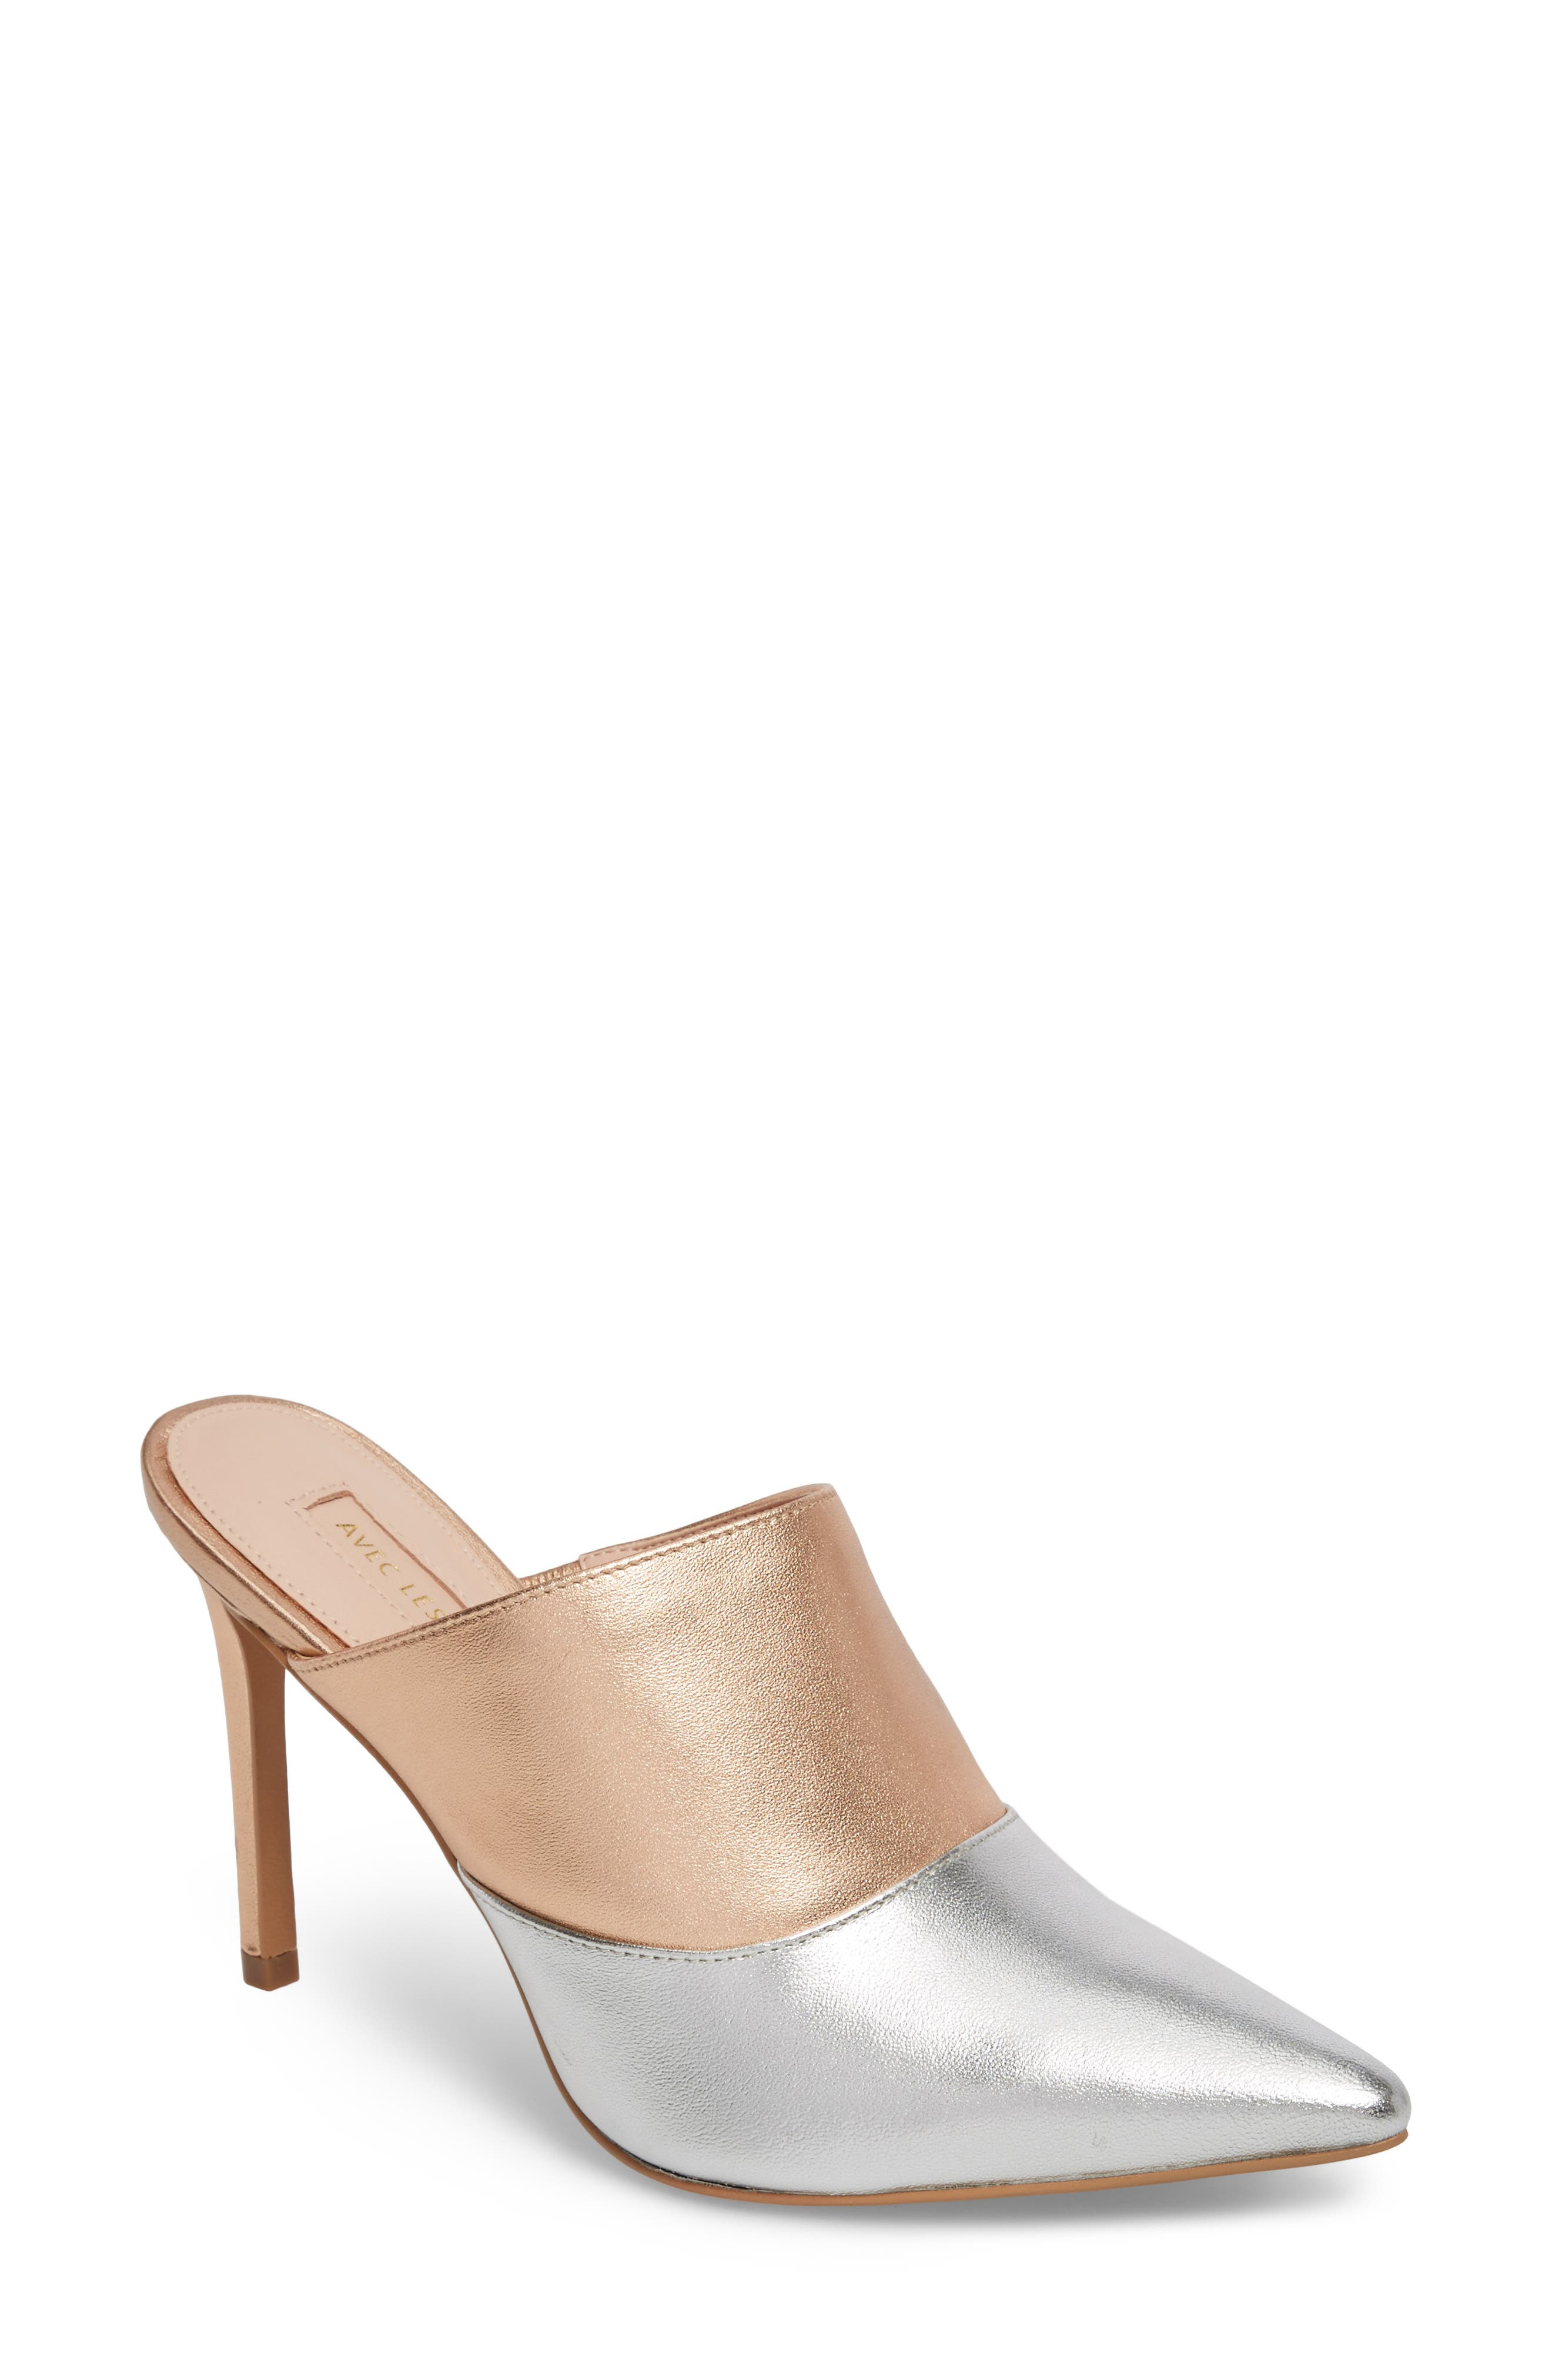 Joelle High Heel Mule,                             Main thumbnail 1, color,                             Silver/ Rose Gold Leather